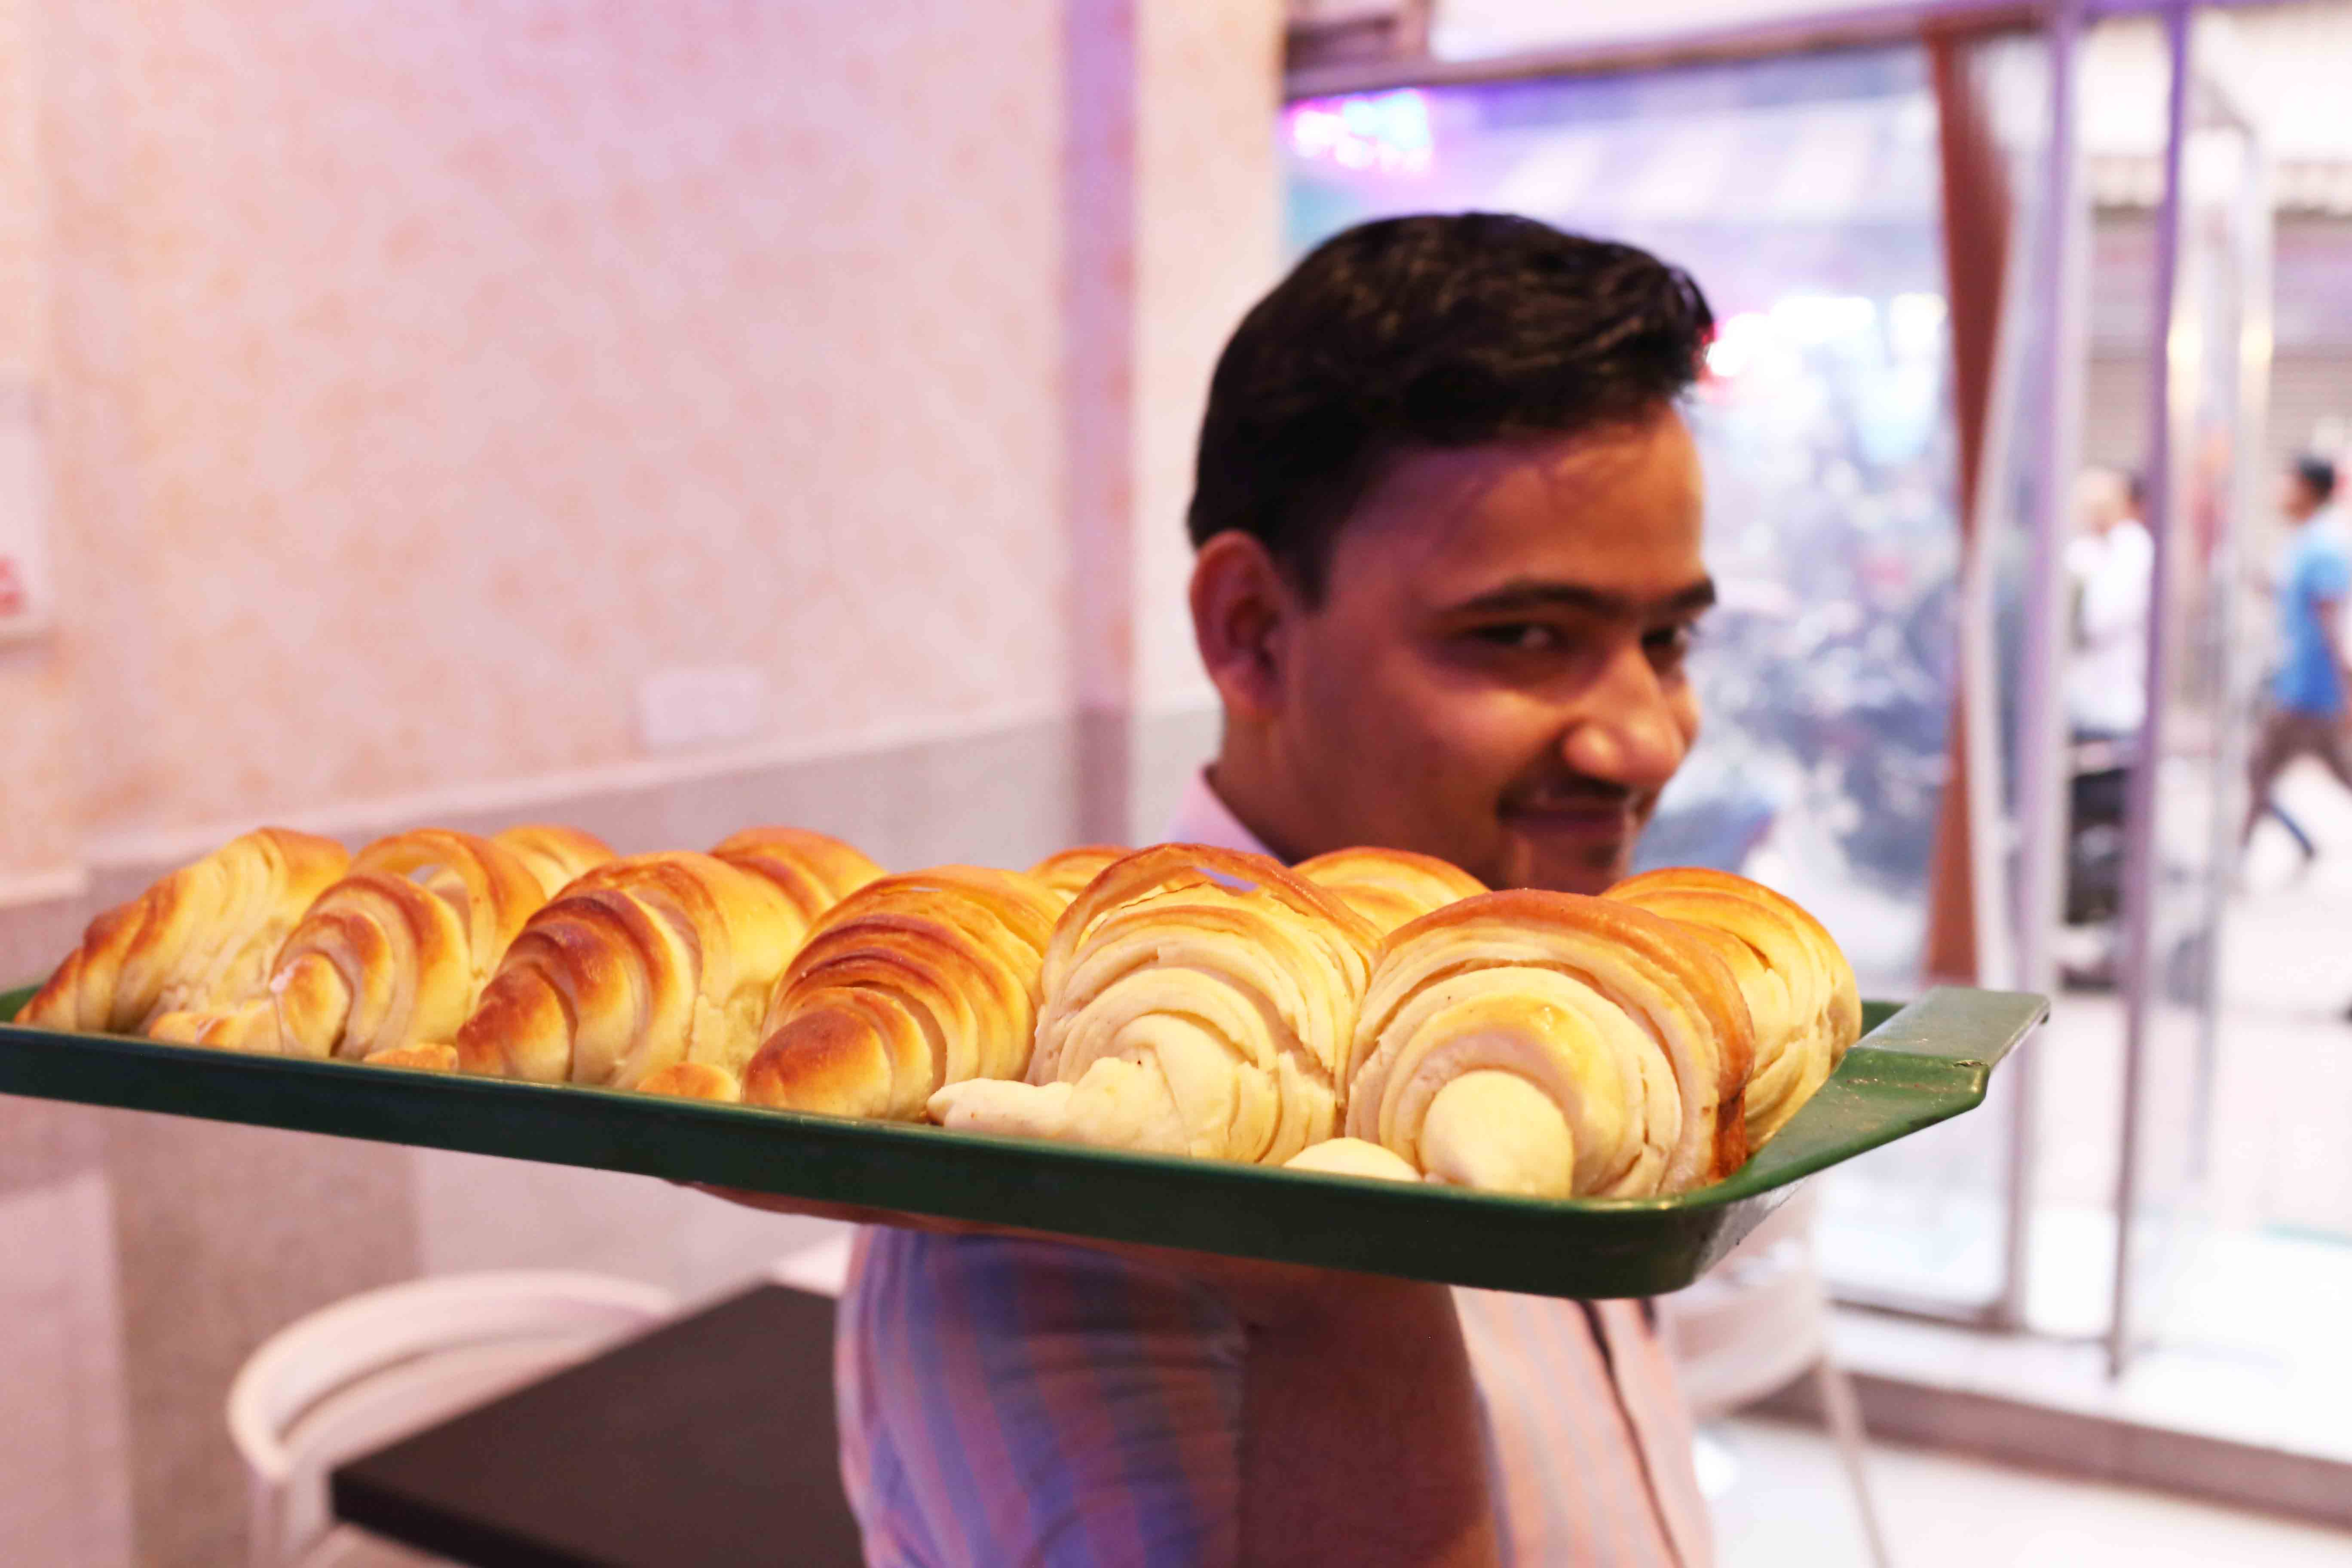 City Food – The Germany Bakery is Shutting Down, Appetite, Paharganj